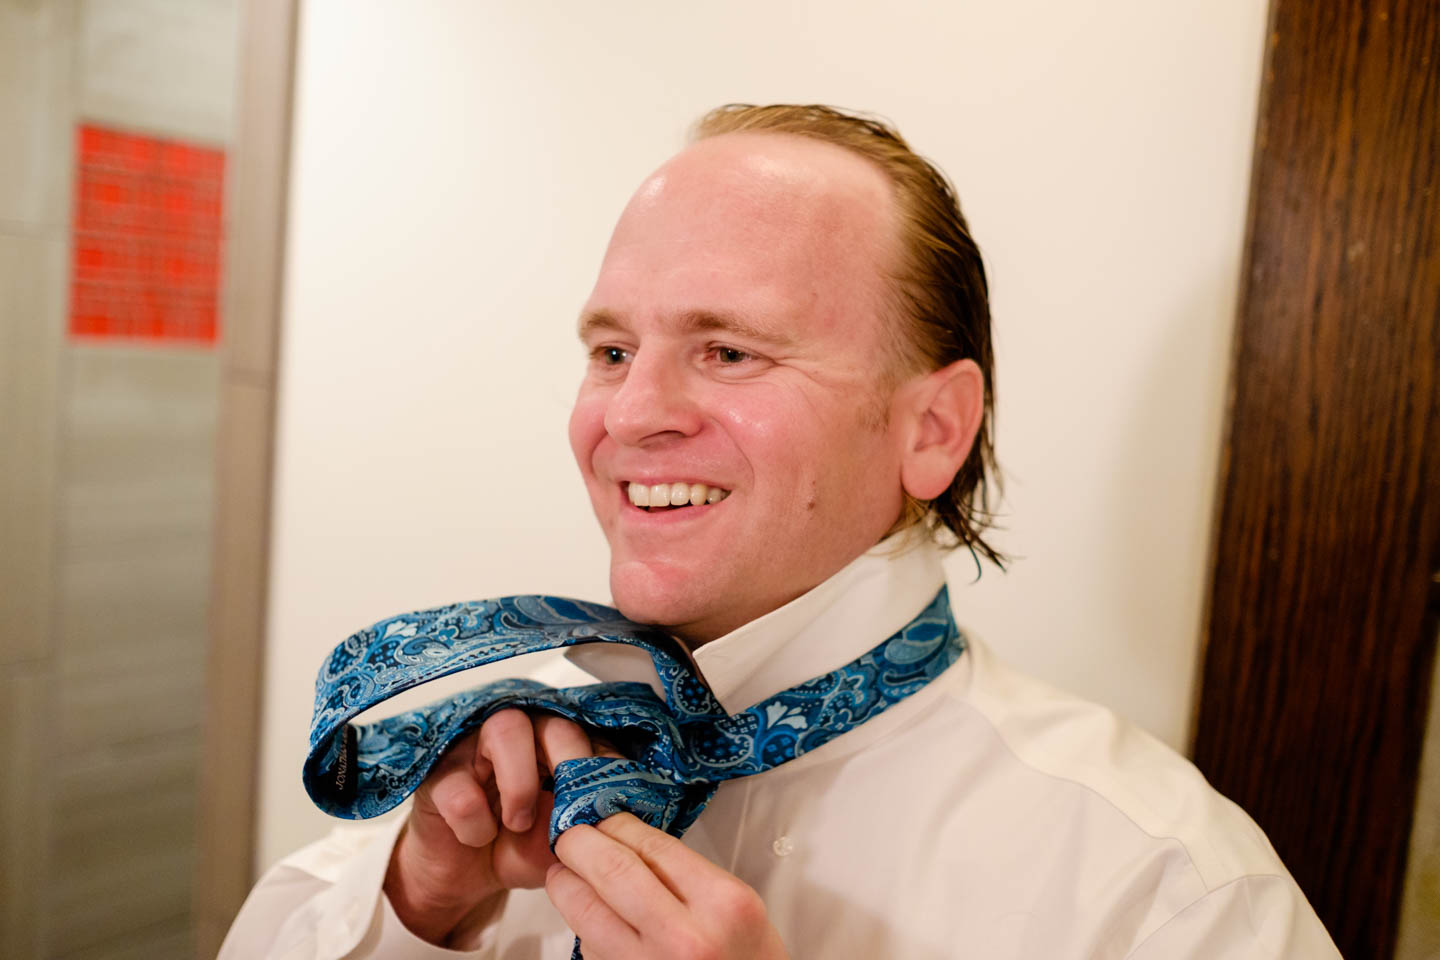 Groom ties the tie